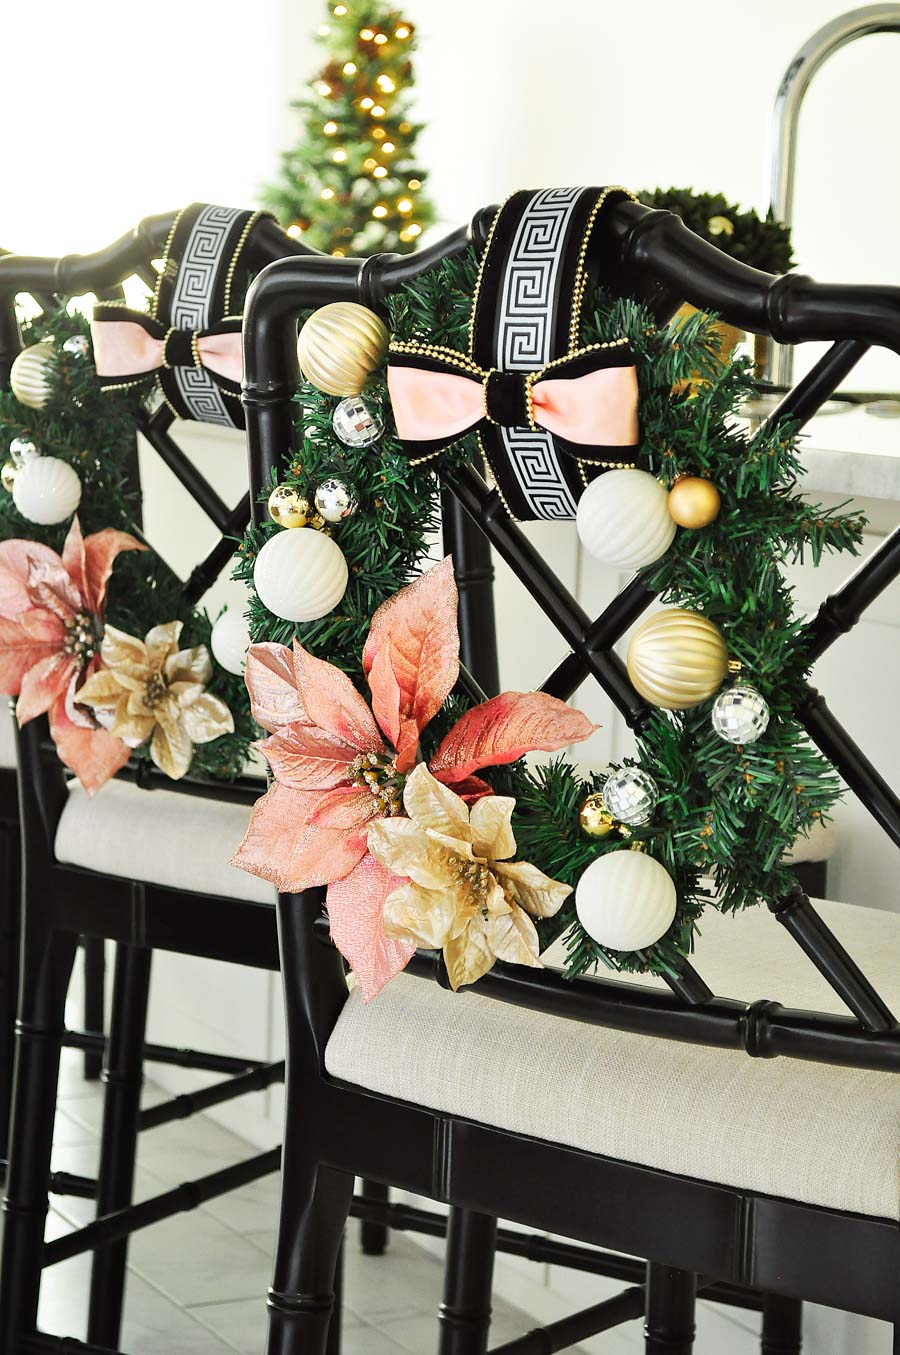 A gorgeous and glam blush, white, and gold chair wreath perfect for holiday and Christmas decor in a kitchen or dining room. Love the Greek Key accents! An easy DIY project.